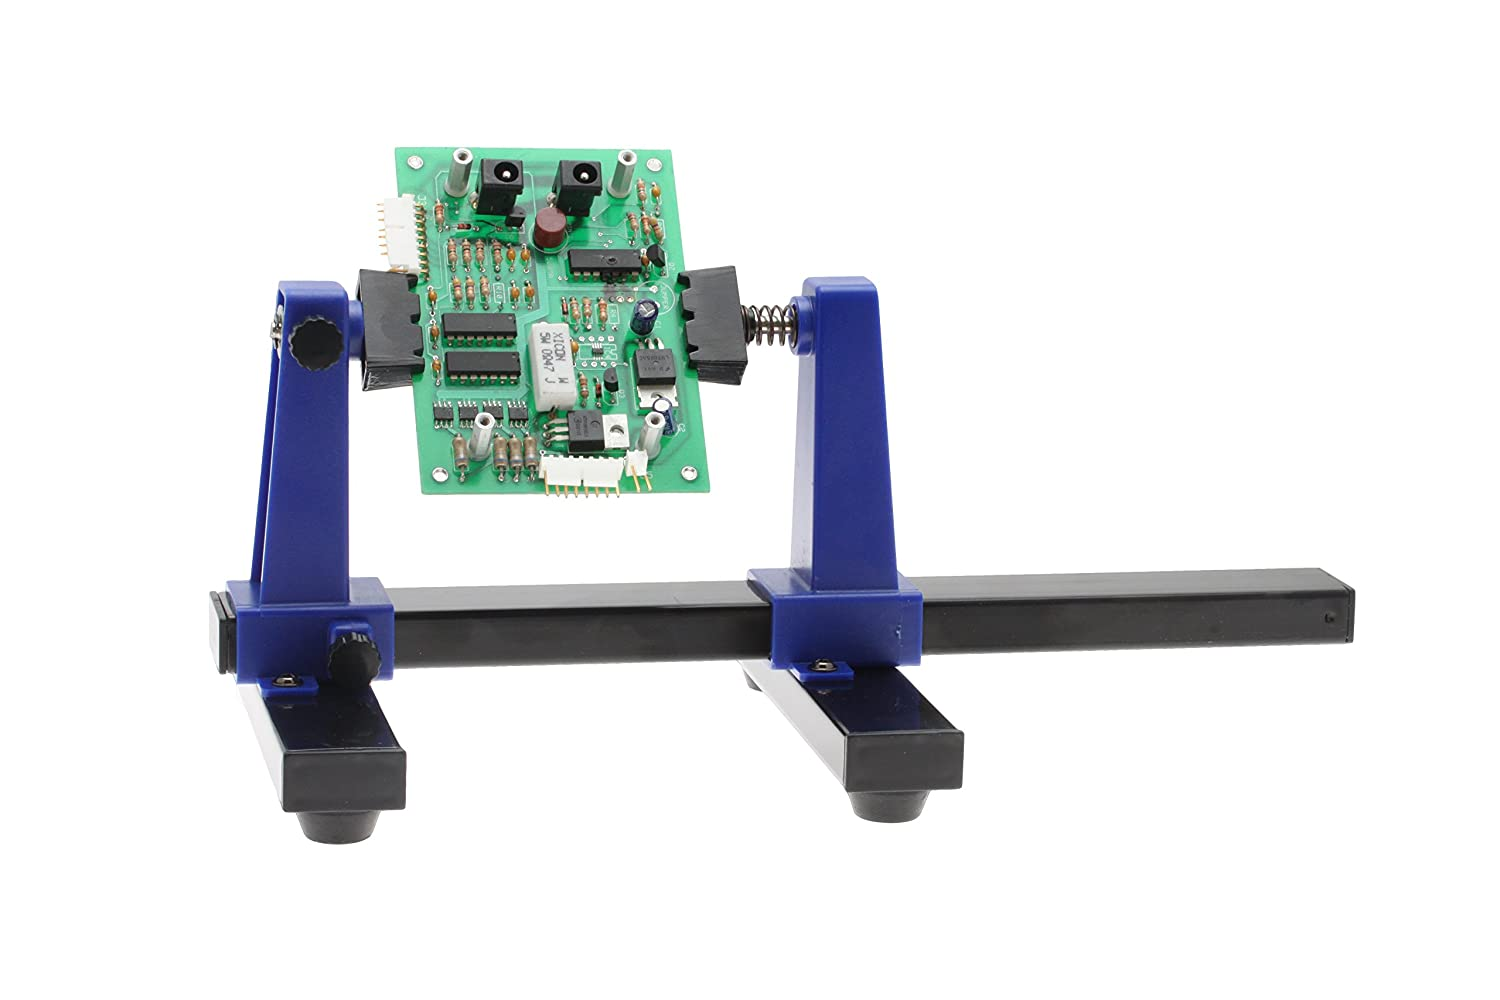 Aven 17010 Adjustable Circuit Board Holder Industrial Simple Printed Products Scientific